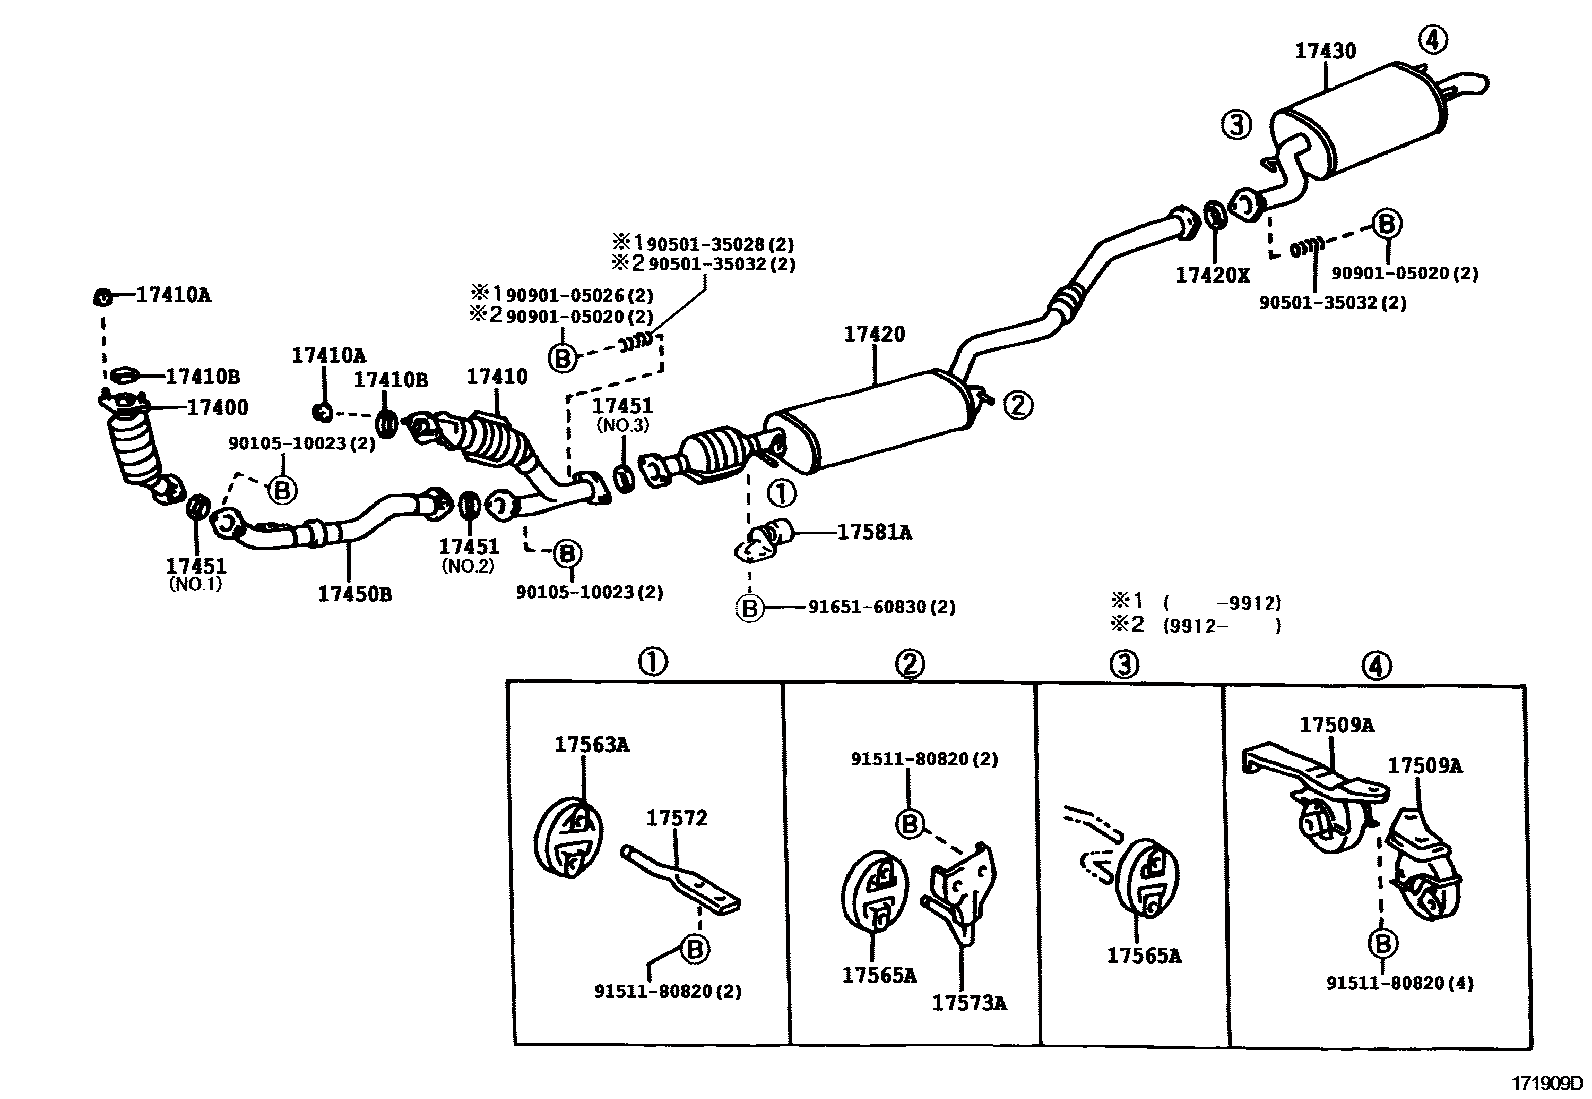 1998 nissan maxima wiring diagram with 92 Lexus Es300 Stereo Wiring Diagram on 92 Lexus Es300 Stereo Wiring Diagram together with P 0996b43f8037fcfd furthermore 4 3l Knock Sensor Location moreover 97 Honda Accord Oxygen Sensor Wiring Diagram in addition Nissan Altima Map Sensor Location.